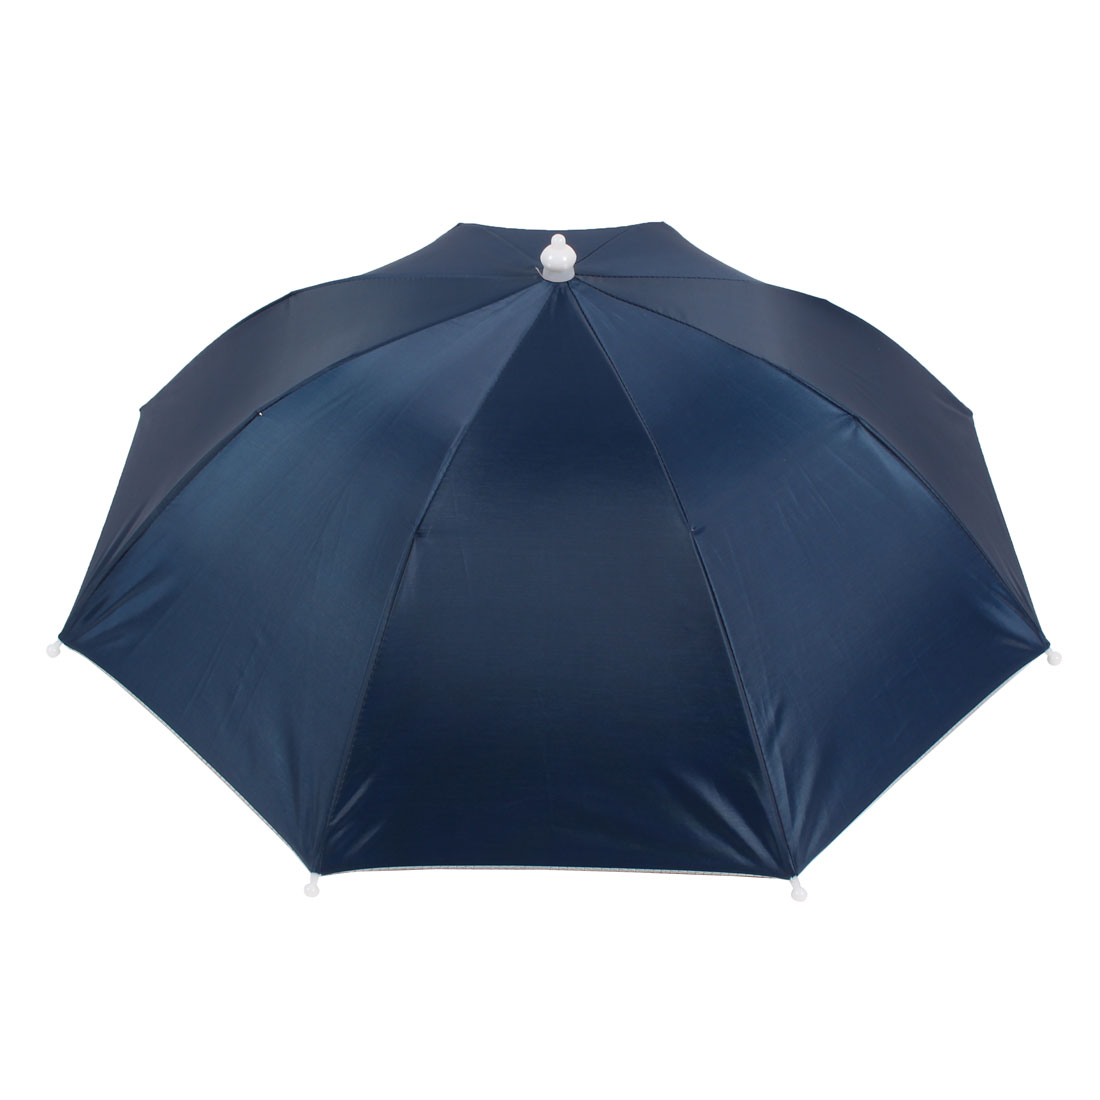 "17"" Length Hands Free Outdoor Sports Fishing Rain Sun Umbrella Hat Navy Blue"